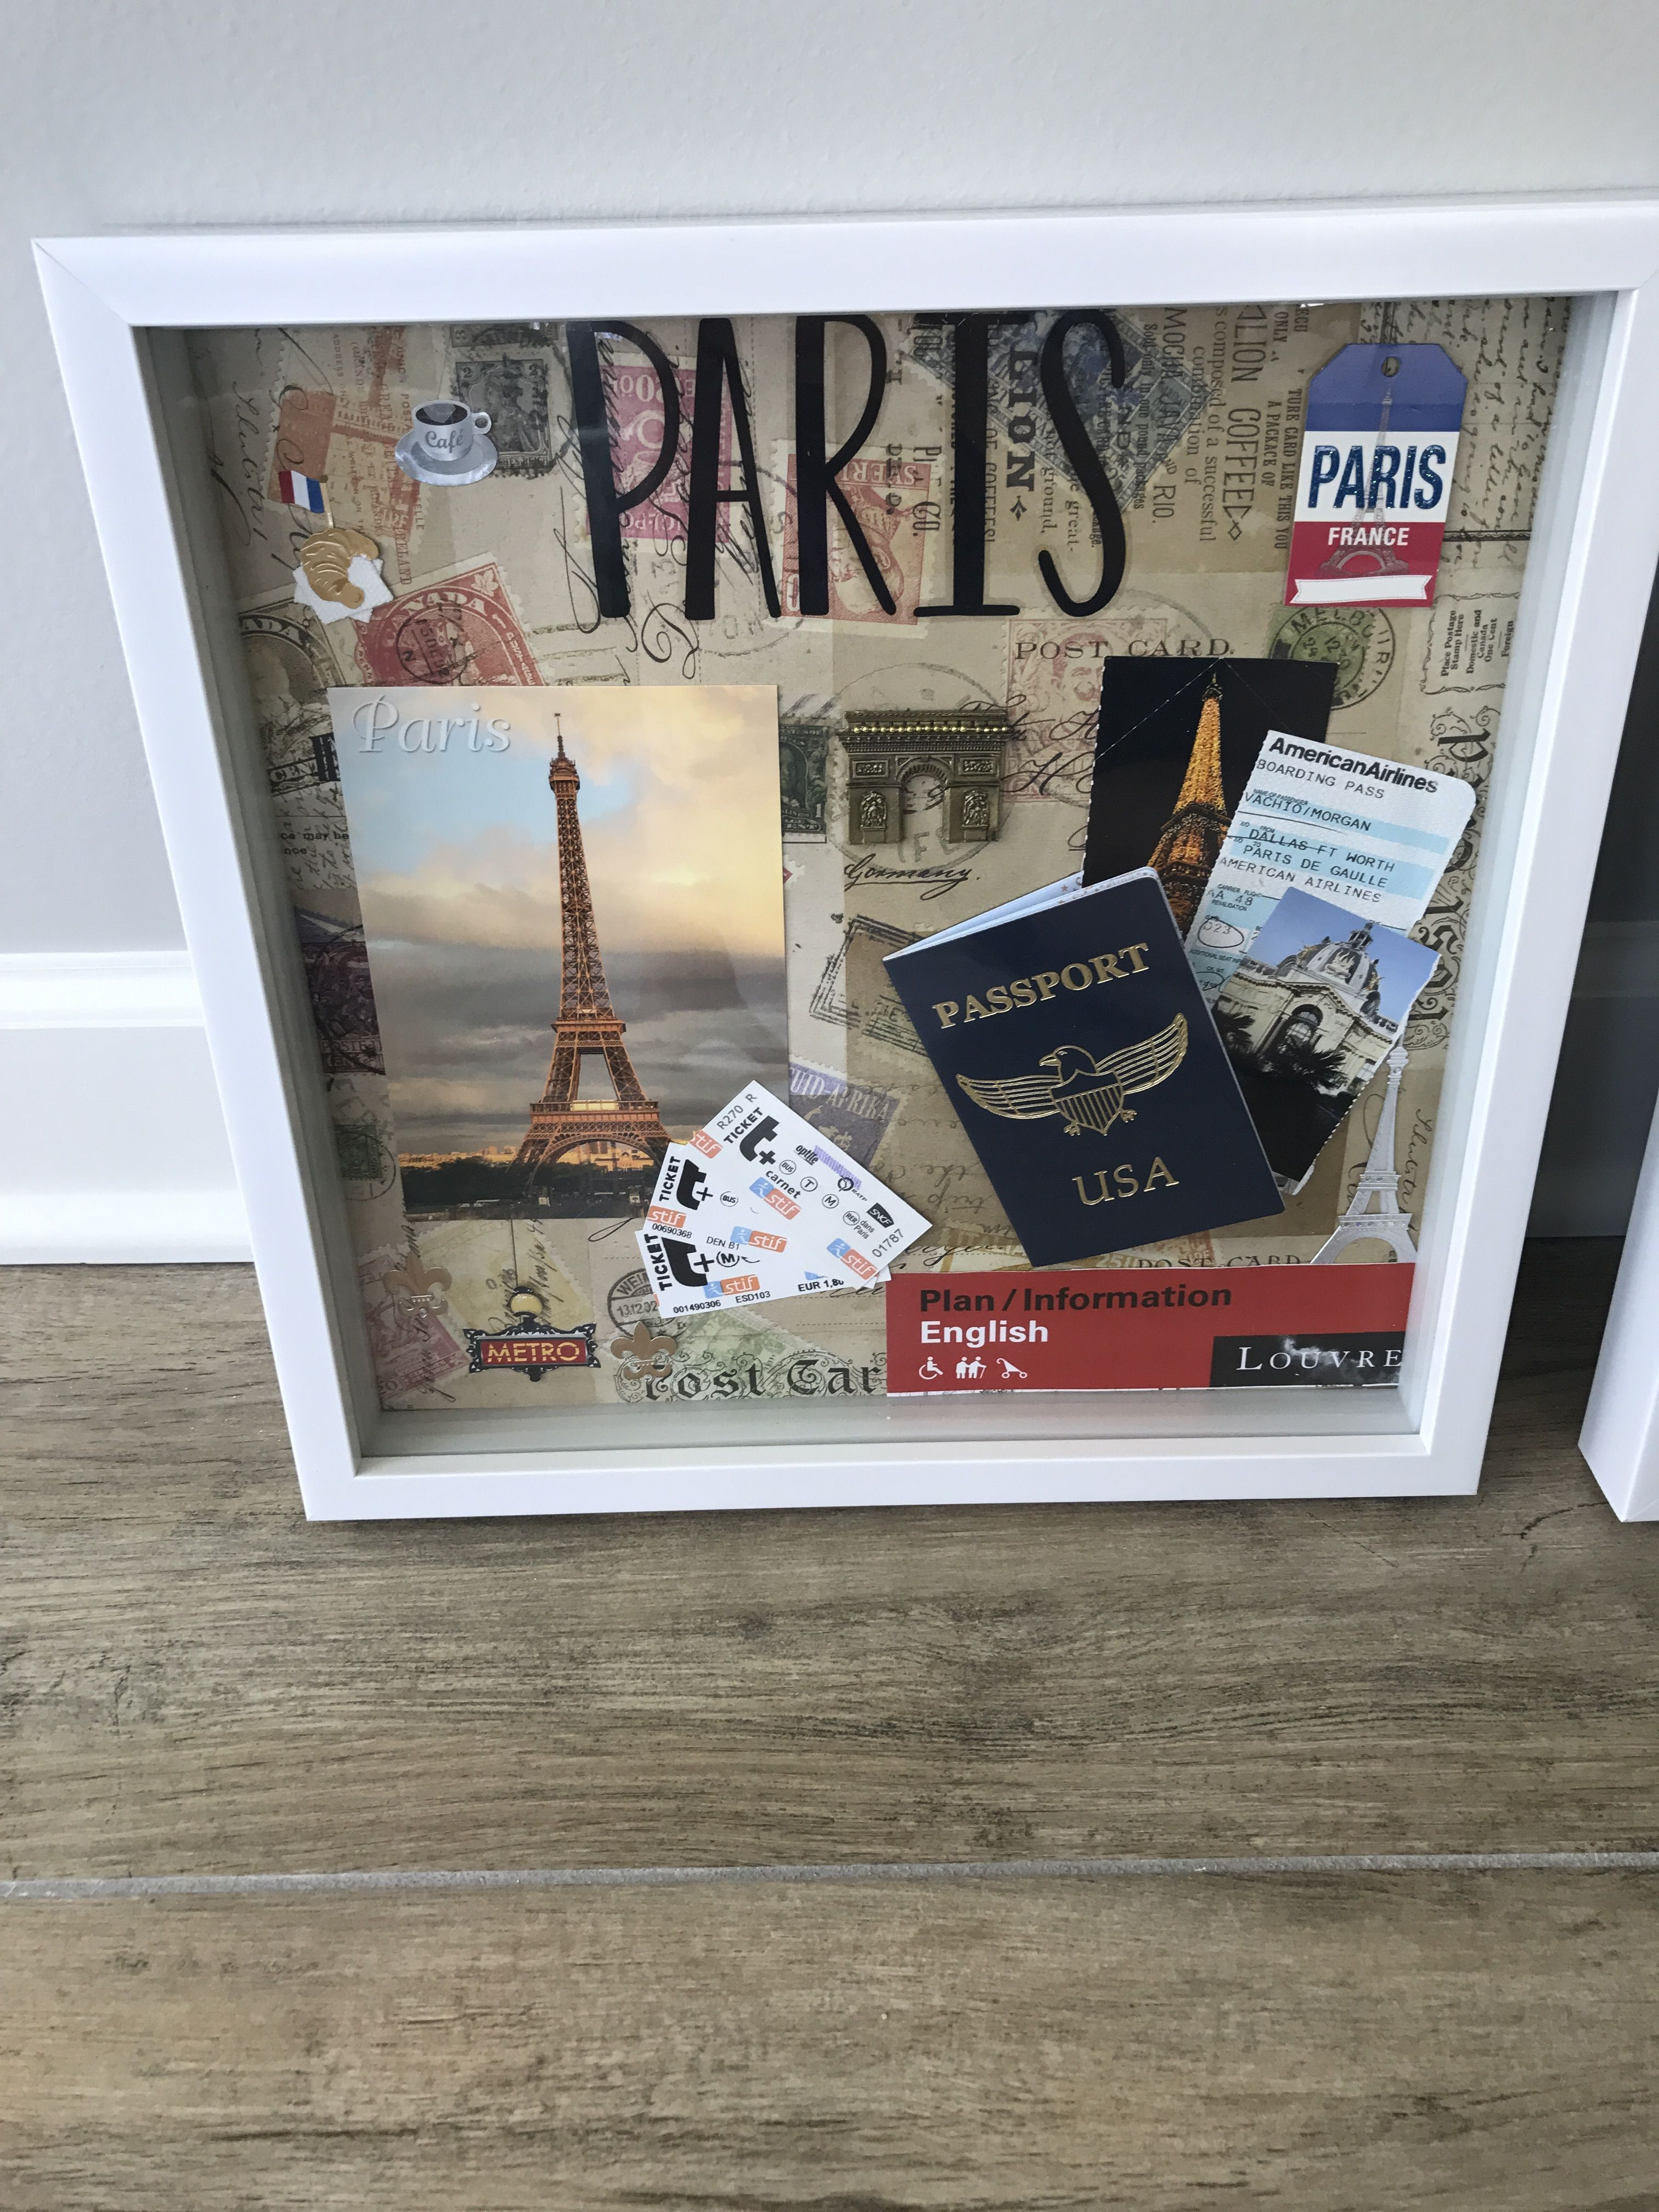 Paris Shadow Box Wohnung Hausdekor Wohnzimmer Wohnideen Dekoration Hausdekoration Einrichten Schl Diy Travel Decor Travel Shadow Boxes Travel Keepsakes